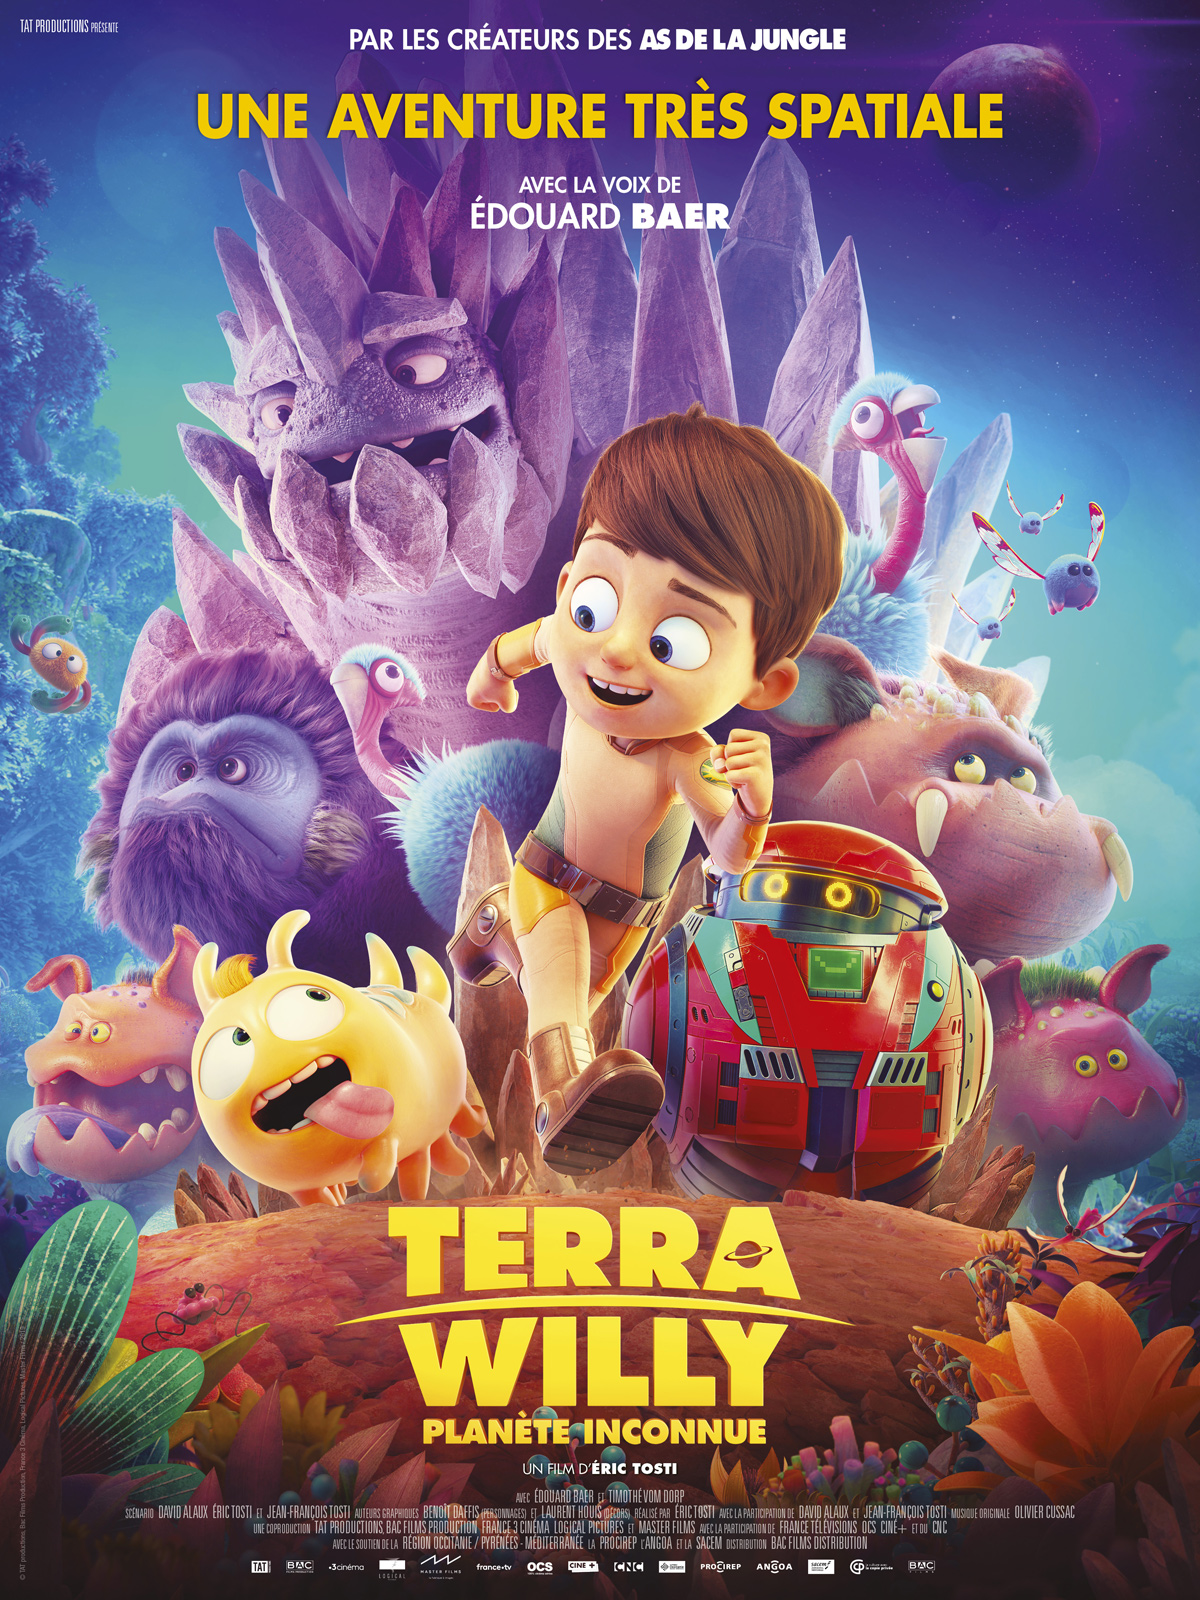 TERRA WILLY, PLANETE INCONNUE (2019)